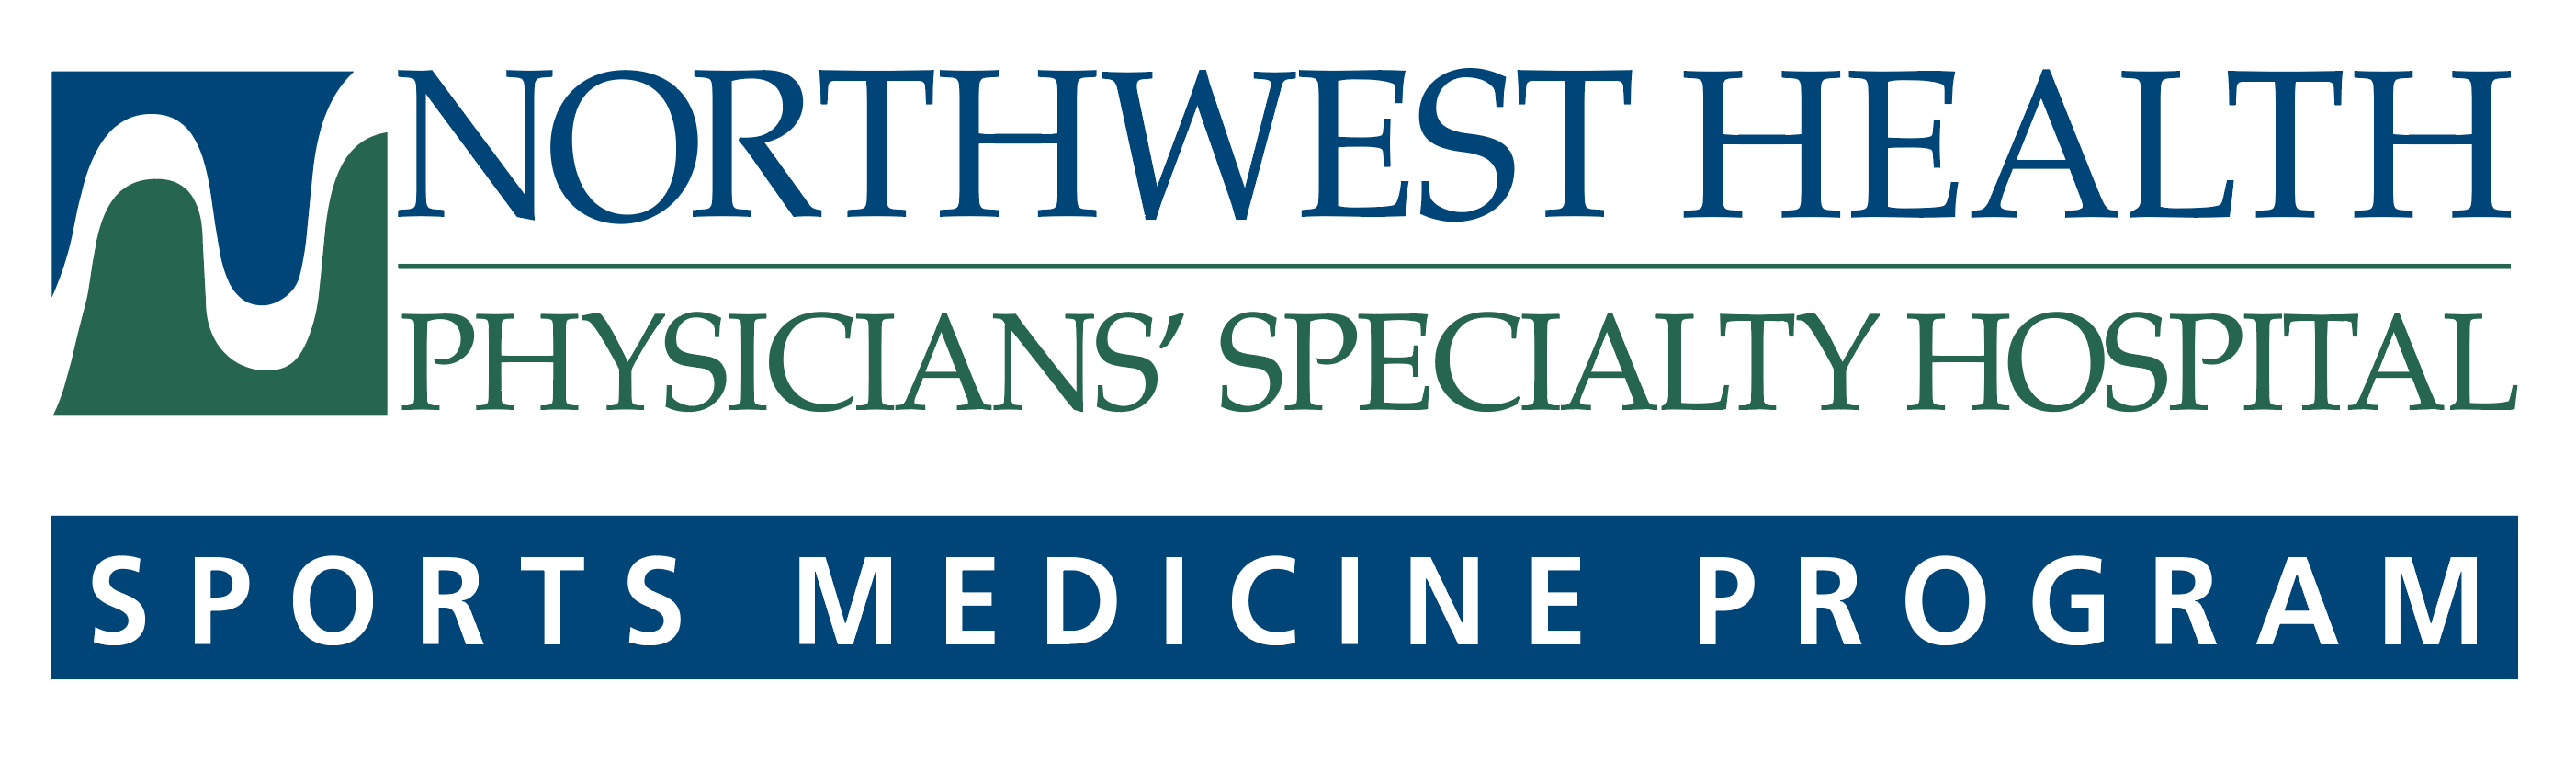 NorthwestHealthSportsMedicineColor